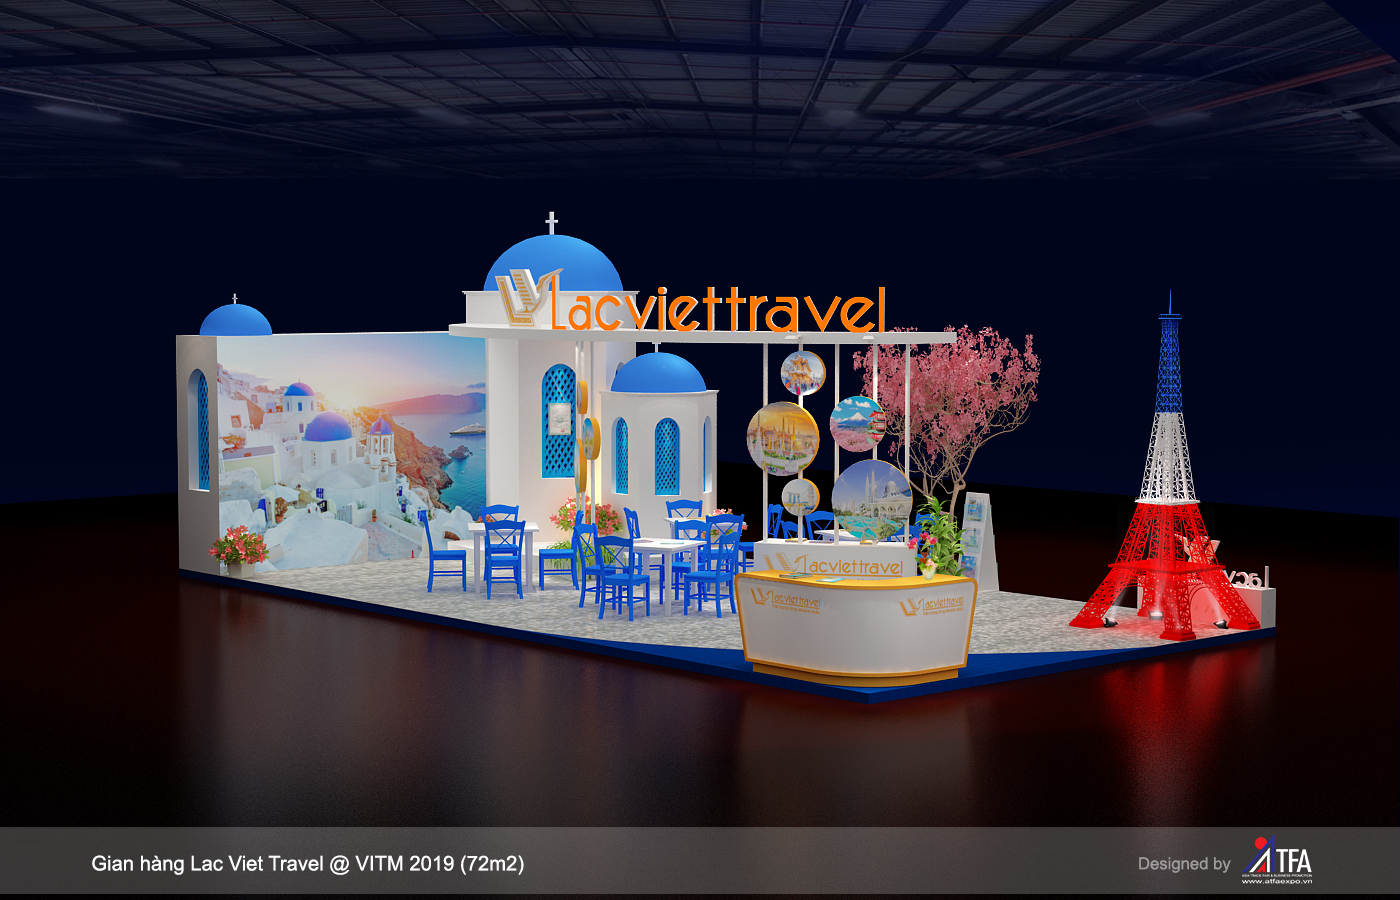 Lac Viet Travel Booth